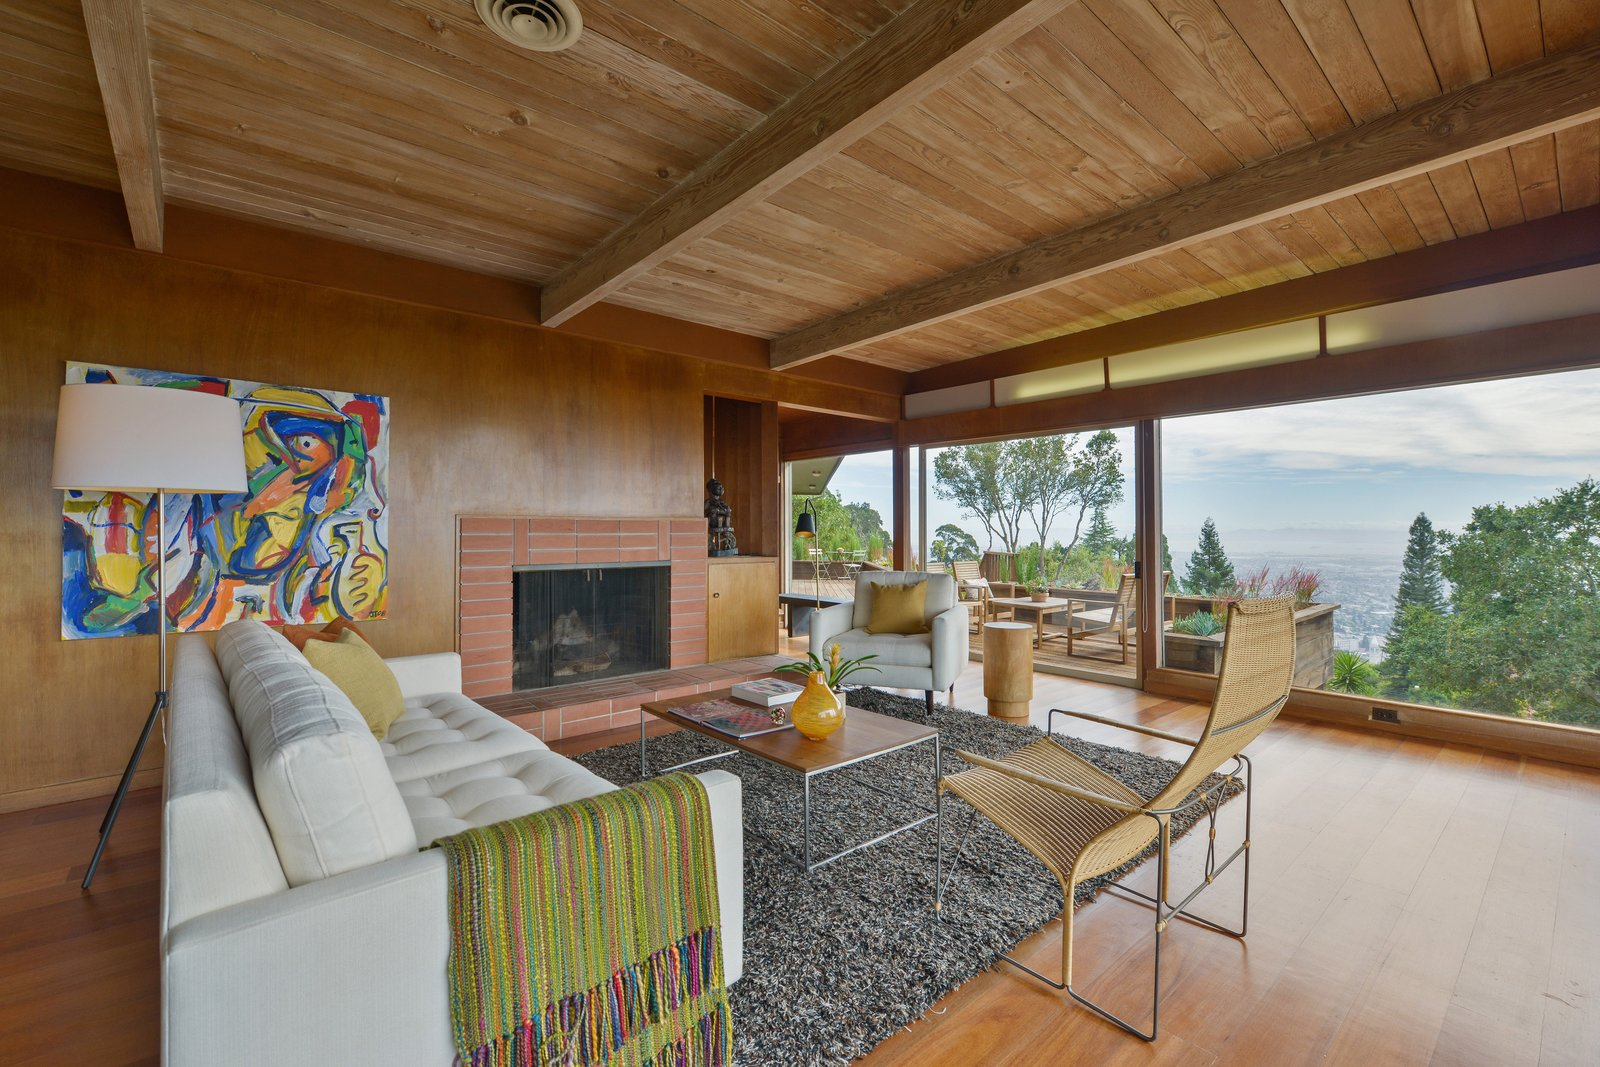 Living, Floor, Sofa, Medium Hardwood, Chair, Standard Layout, Coffee Tables, Wood Burning, End Tables, and Storage The living room from the other angle.   Living Medium Hardwood Standard Layout Storage Photos from A Berkeley Midcentury With Jaw-Dropping Views Asks $945K